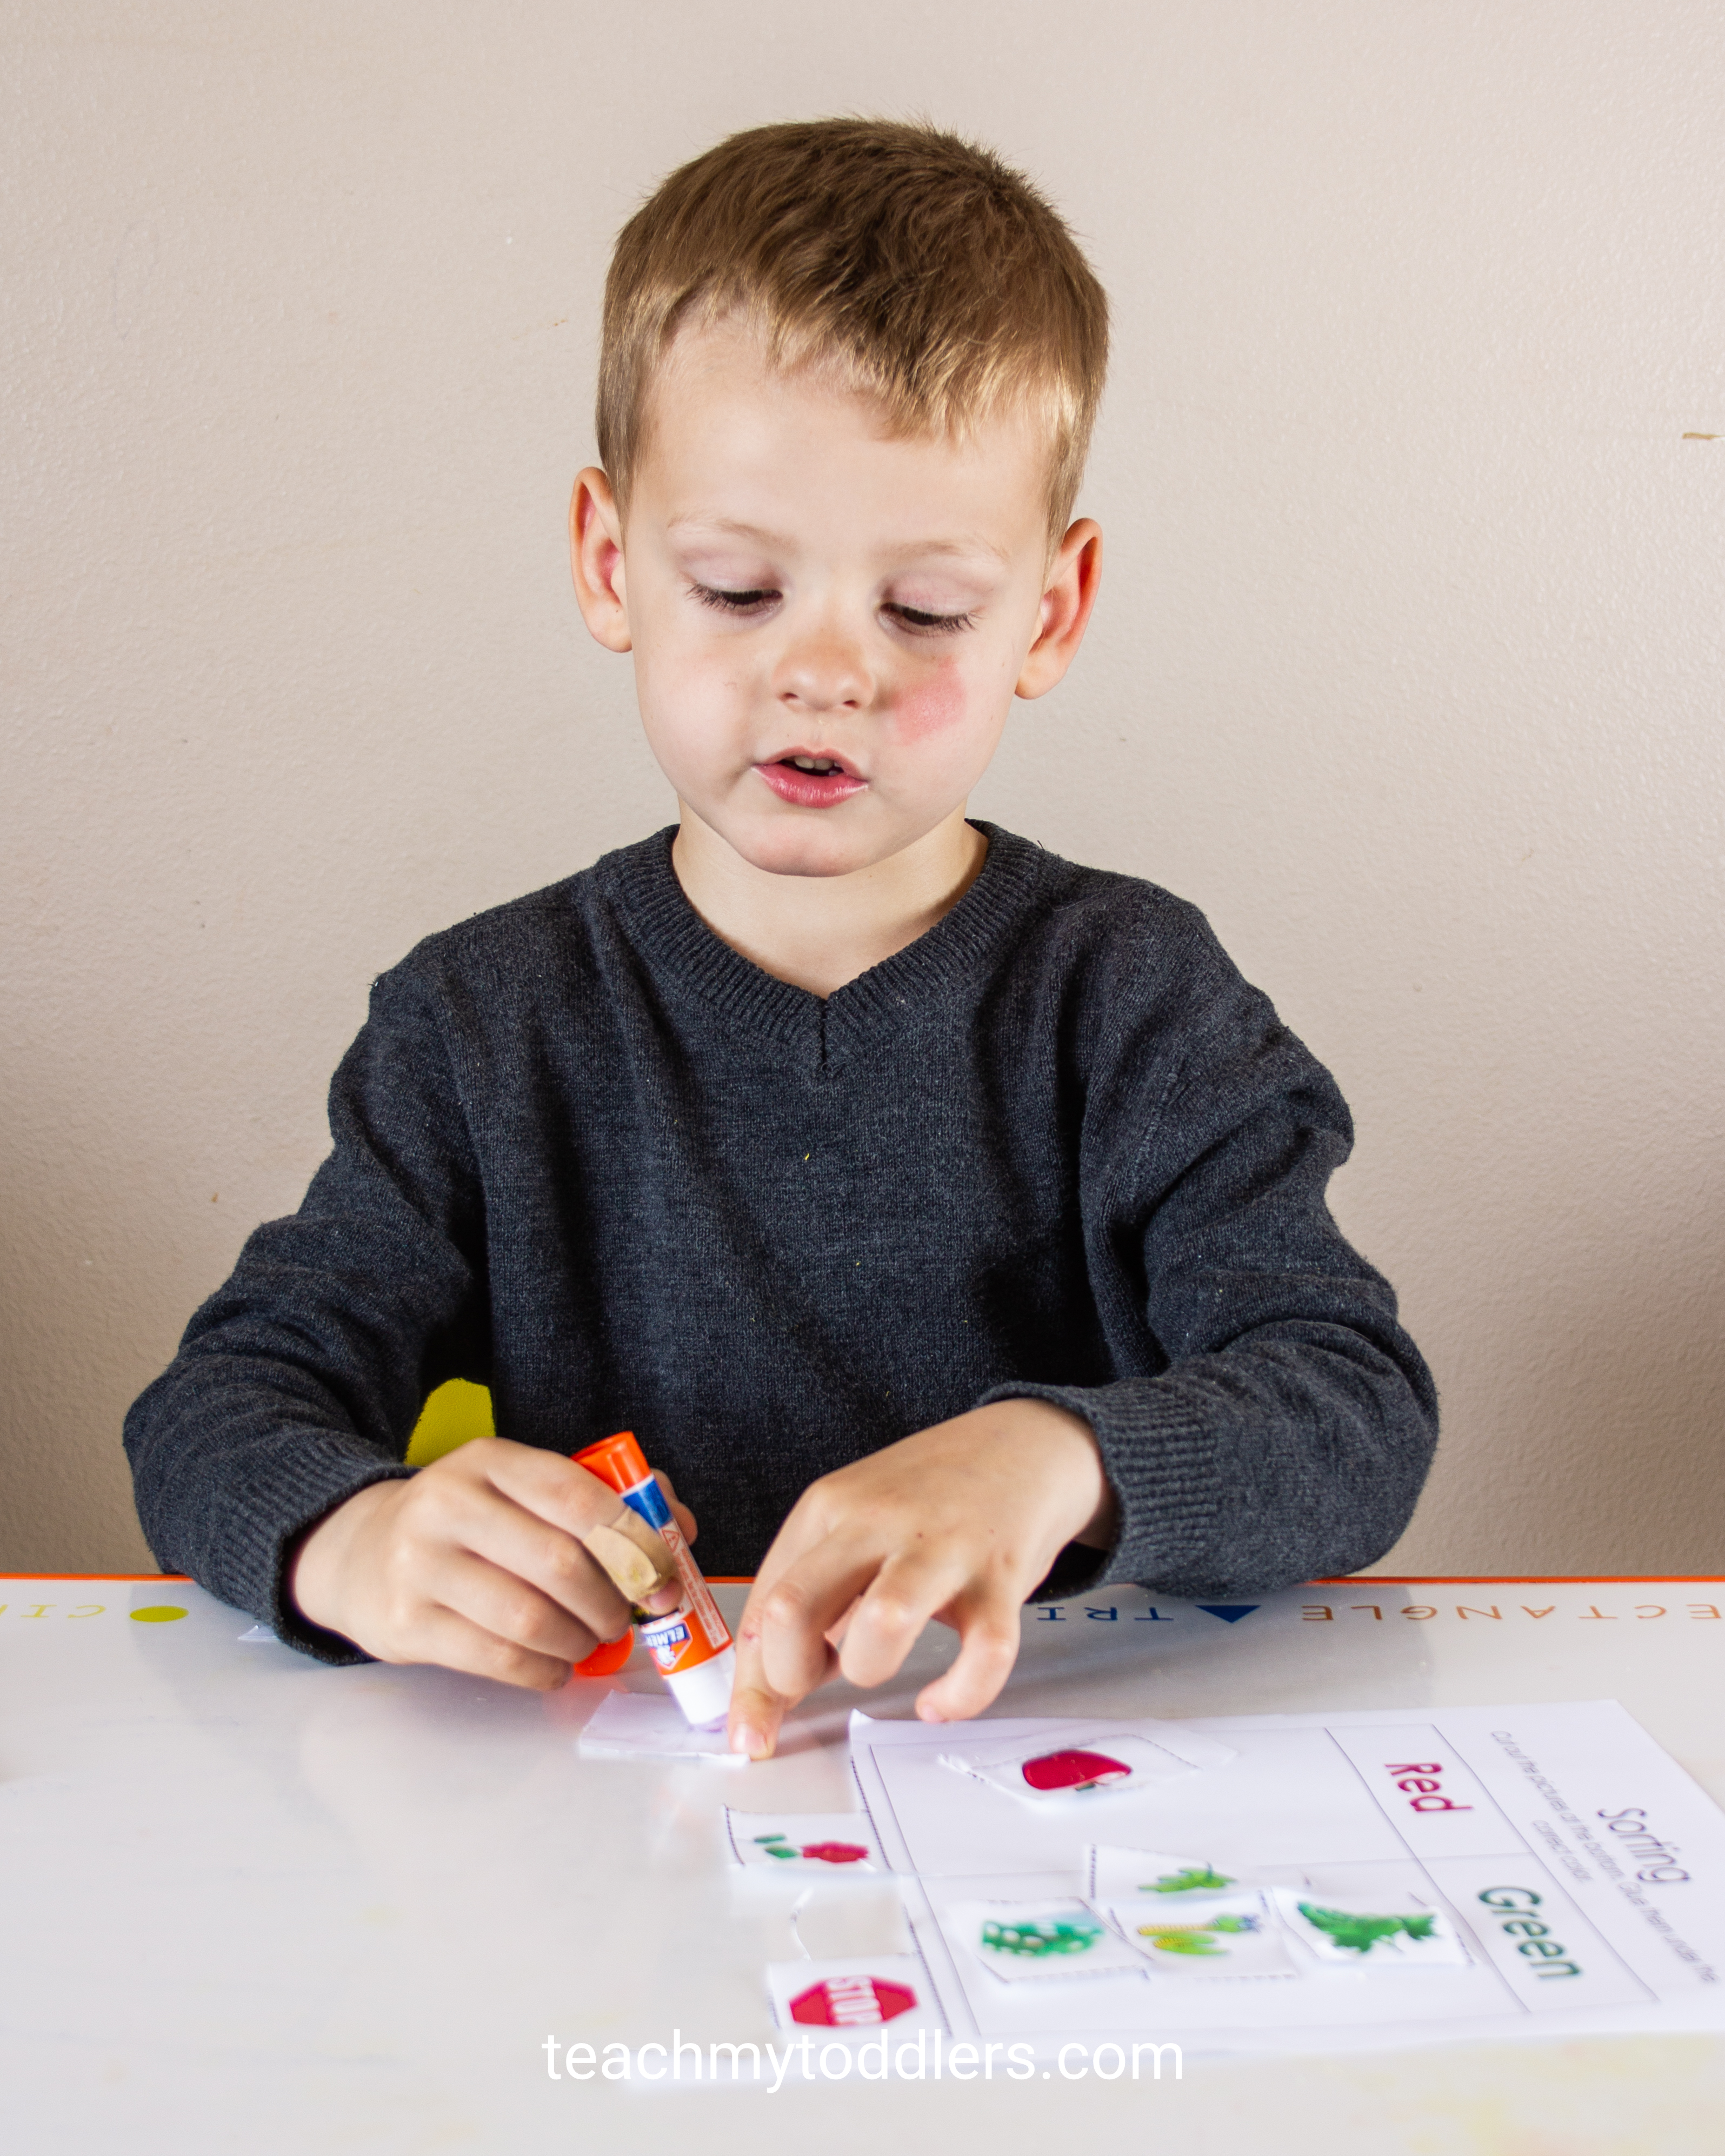 Learn how to use this color sorting cut and paste activity to teach preschoolers colors